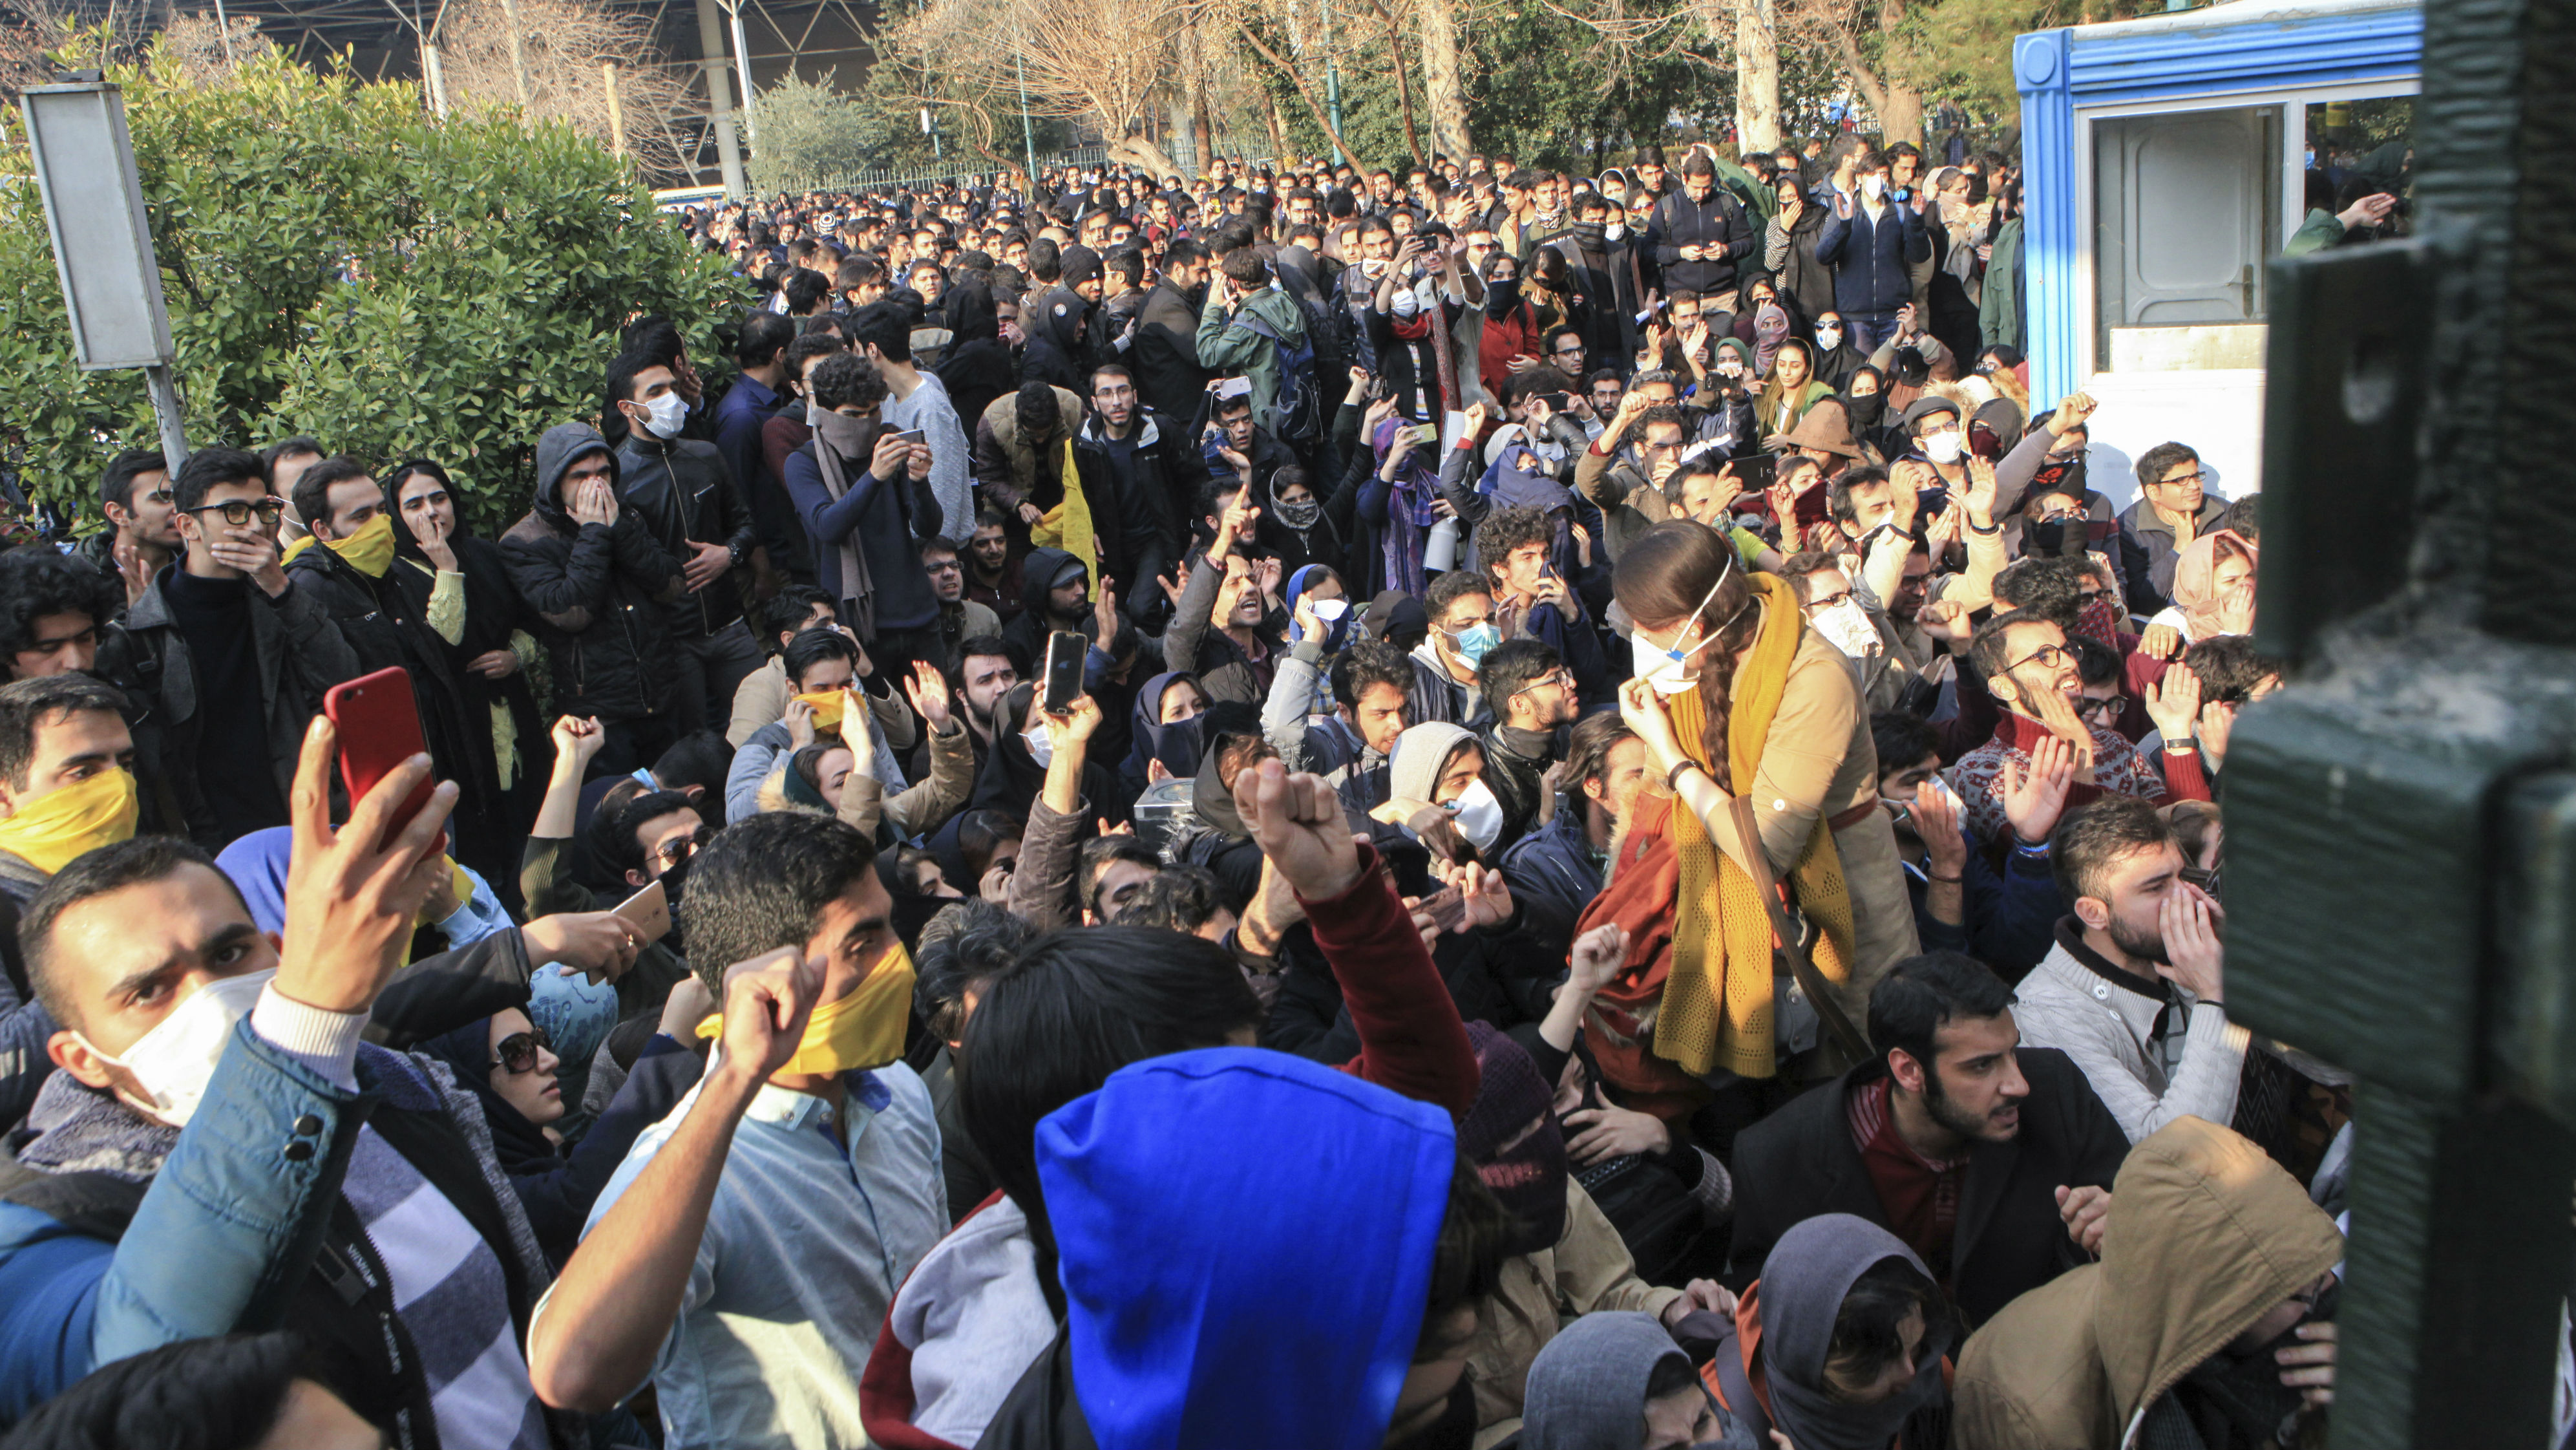 FILE - In this Saturday, Dec. 30, 2017 file photo taken by an individual not employed by the Associated Press and obtained by the AP outside Iran, university students attend a protest inside Tehran University while anti-riot Iranian police prevent them to join other protestors, in Tehran, Iran. As protests over Iran's faltering economy rapidly spread across the country, a channel on a mobile messaging app run by an exiled journalist helped fan the passions of some of those who took to the street. The Telegram app shut down a channel run by Roohallah Zam after Iranian authorities complained that it was inciting violence.